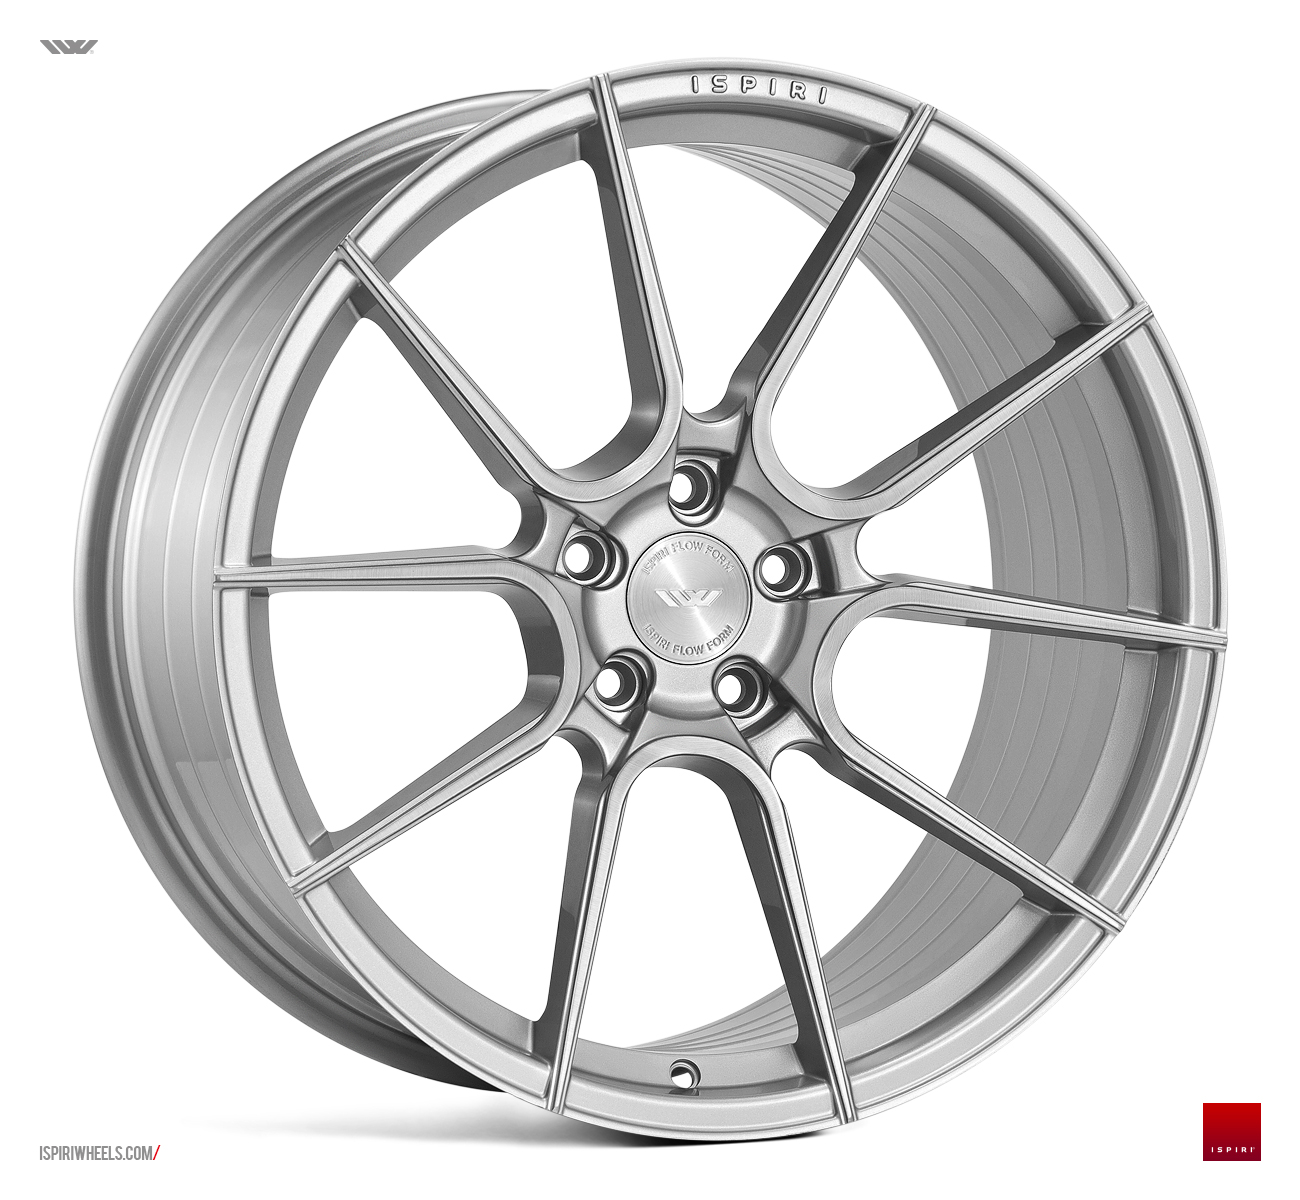 "NEW 20"" ISPIRI FFR6 TWIN 5 SPOKE ALLOY WHEELS IN PURE SILVER BRUSHED, WIDER 10"" REARS"